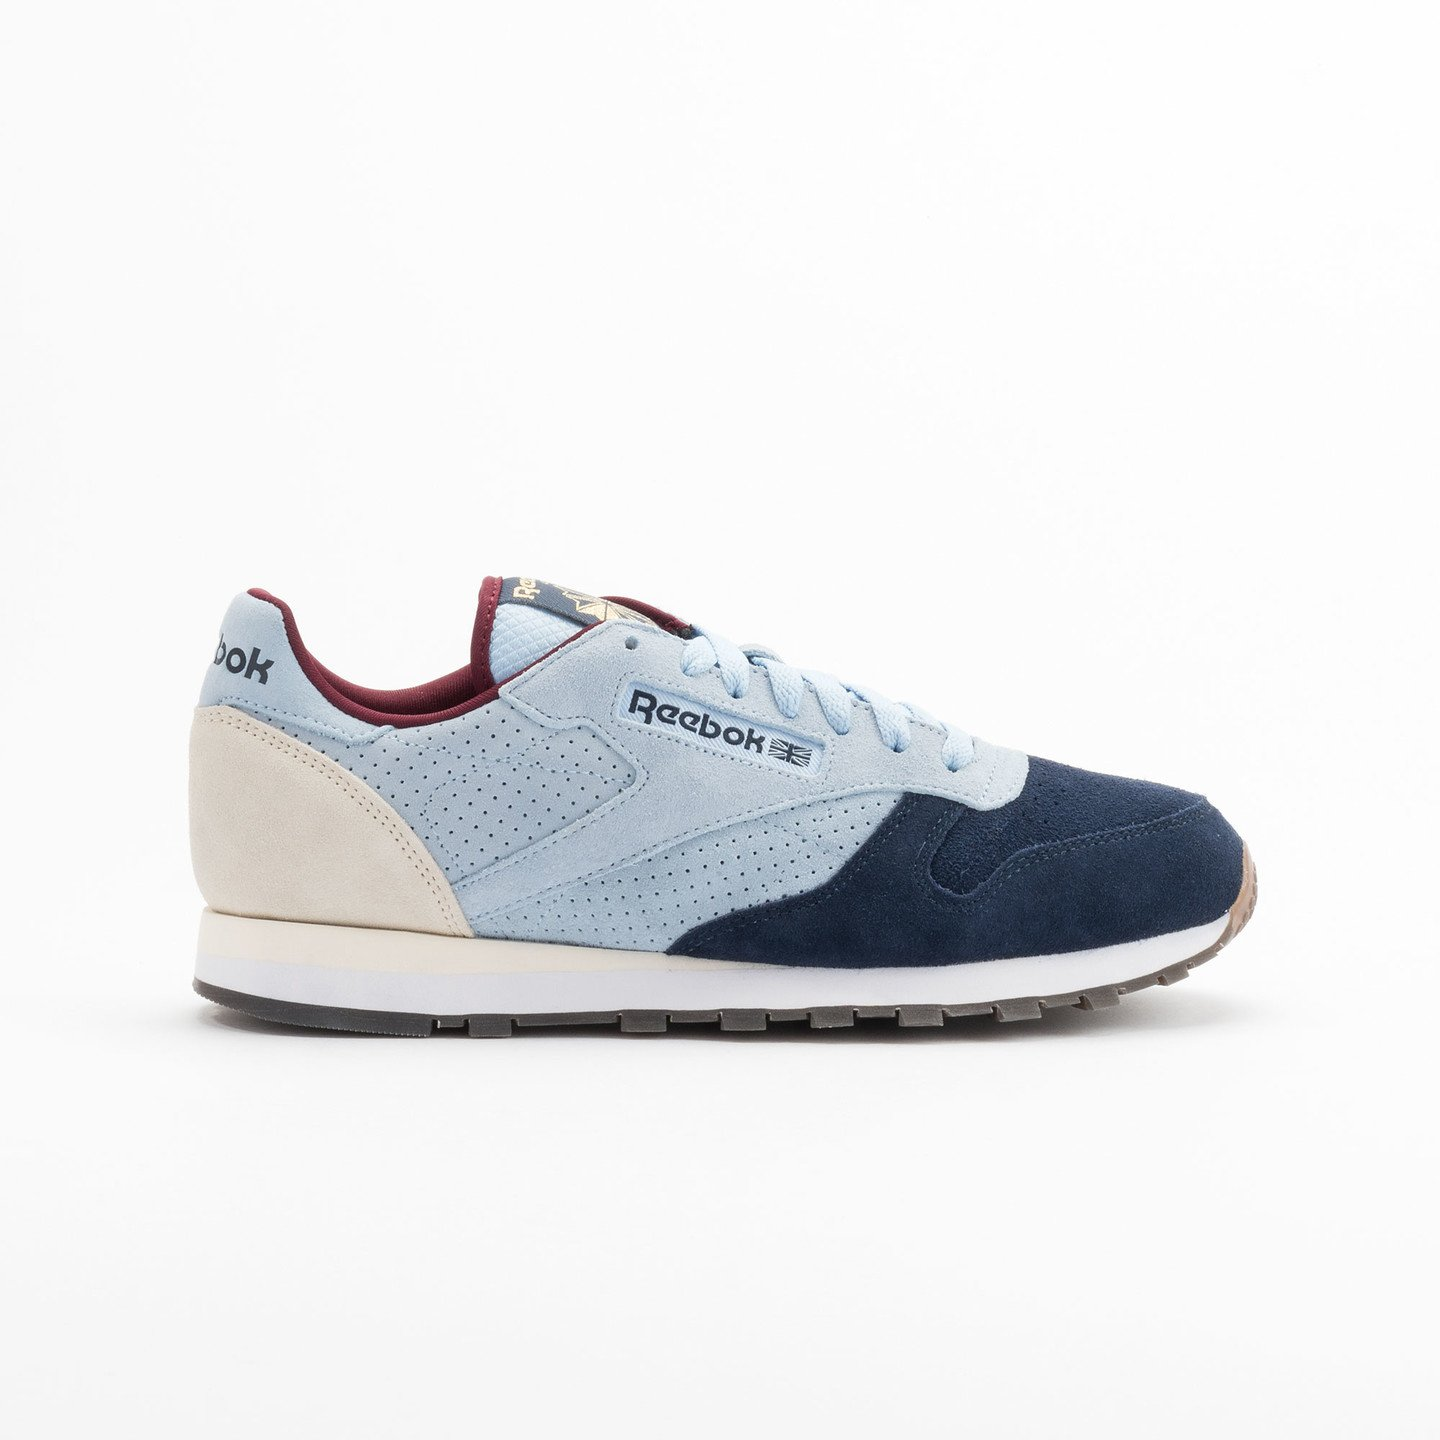 Reebok Classic Leather Int Navy / Light Blue / Sand V66829-43